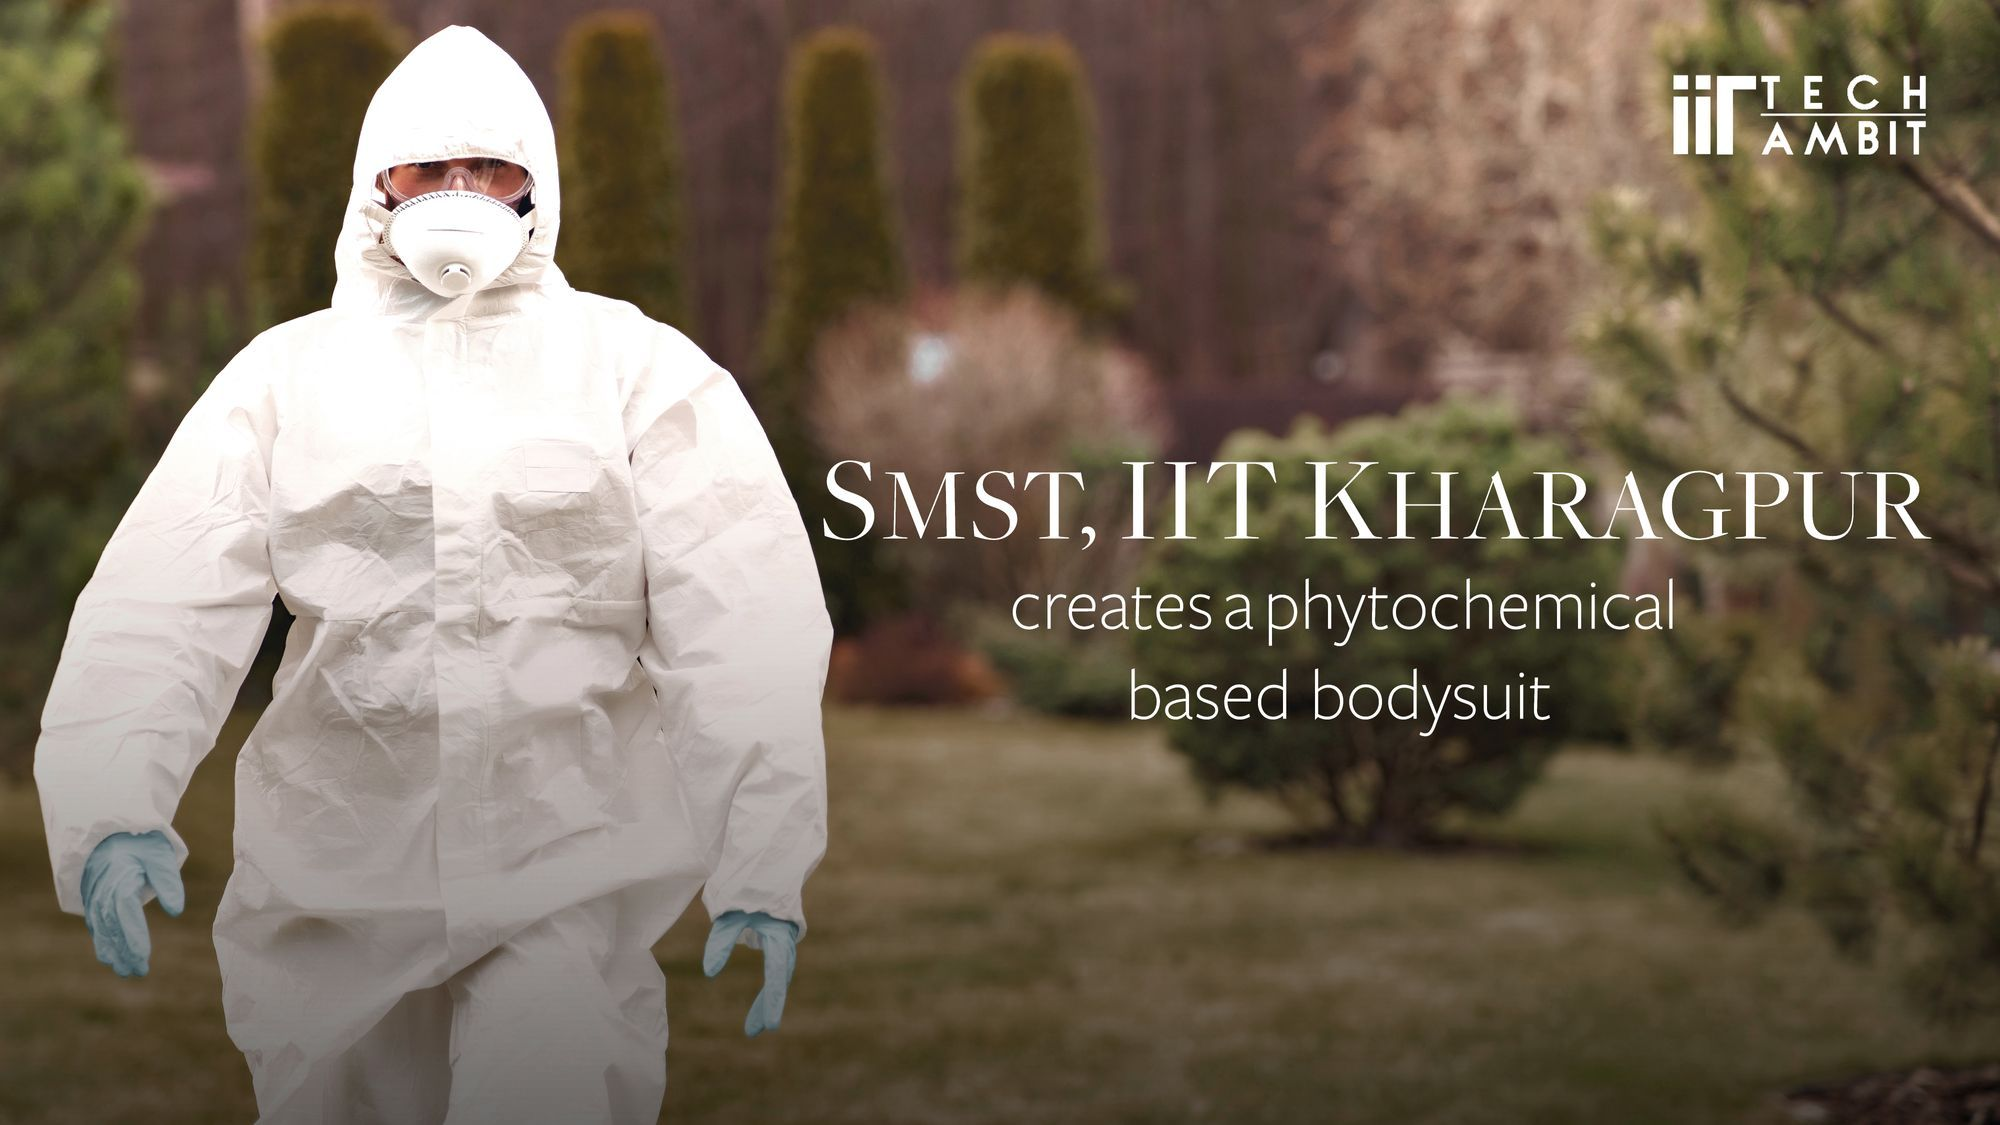 SMST, IIT Kharagpur to create a phytochemical-based bodysuit